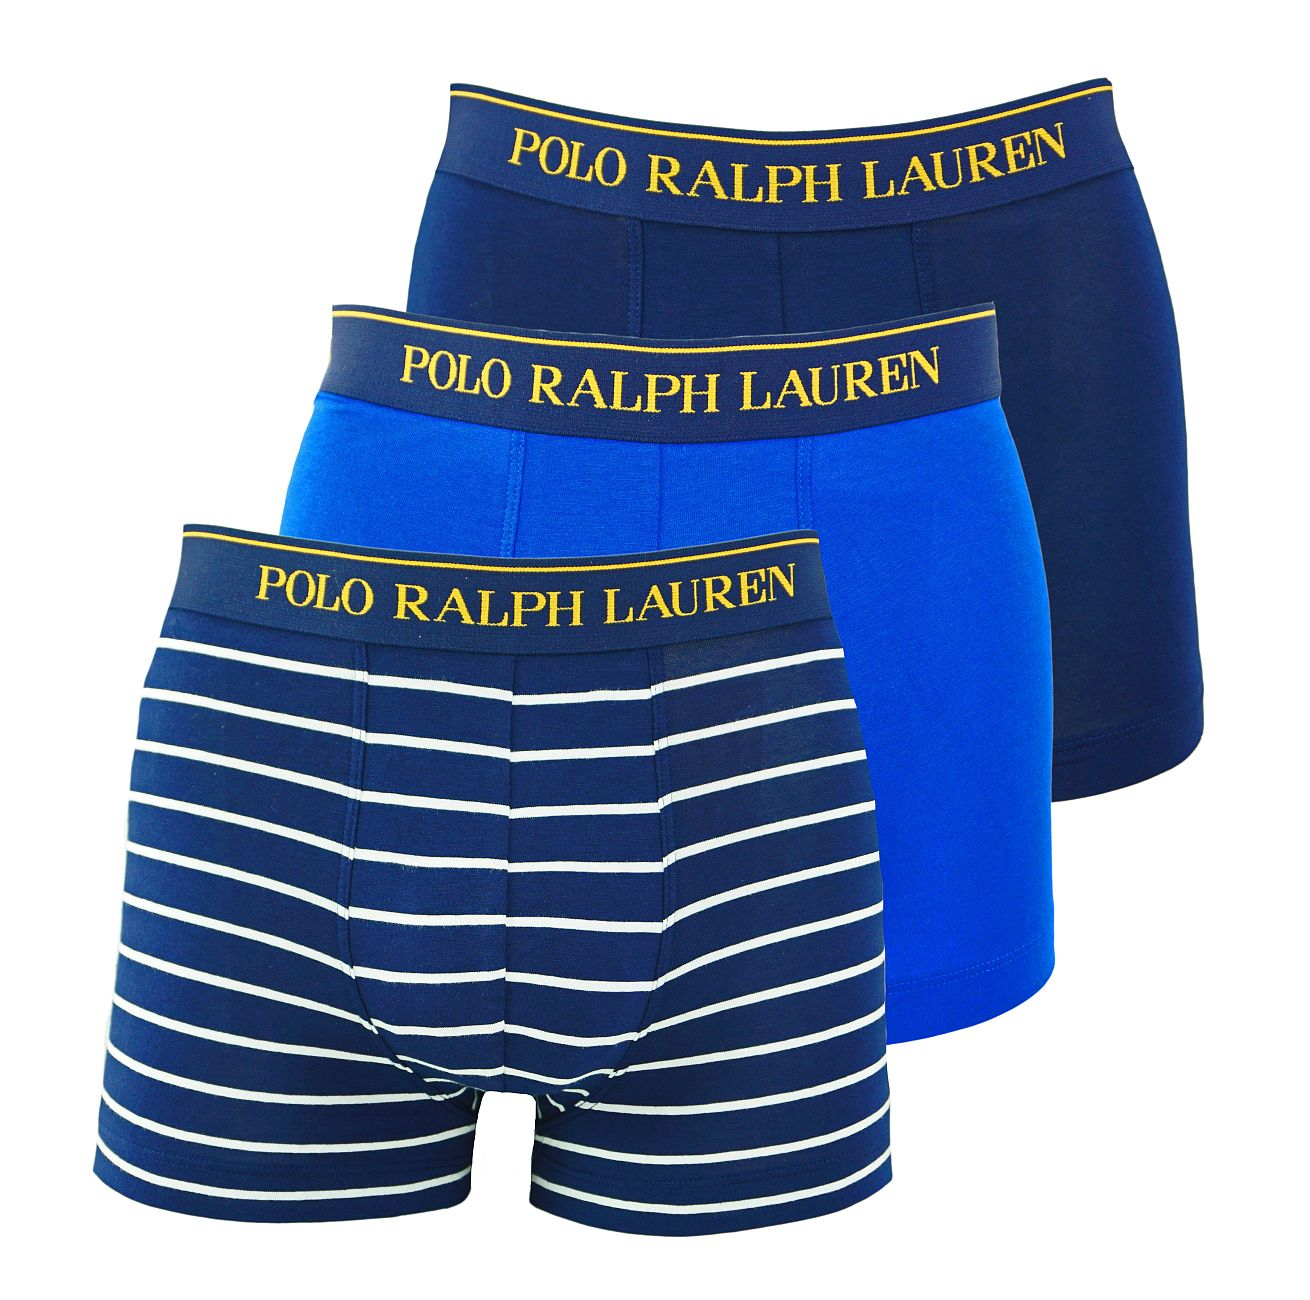 Ralph Lauren 3er Pack Classic Trunks Multicolor 714662050018 S18-RLT1